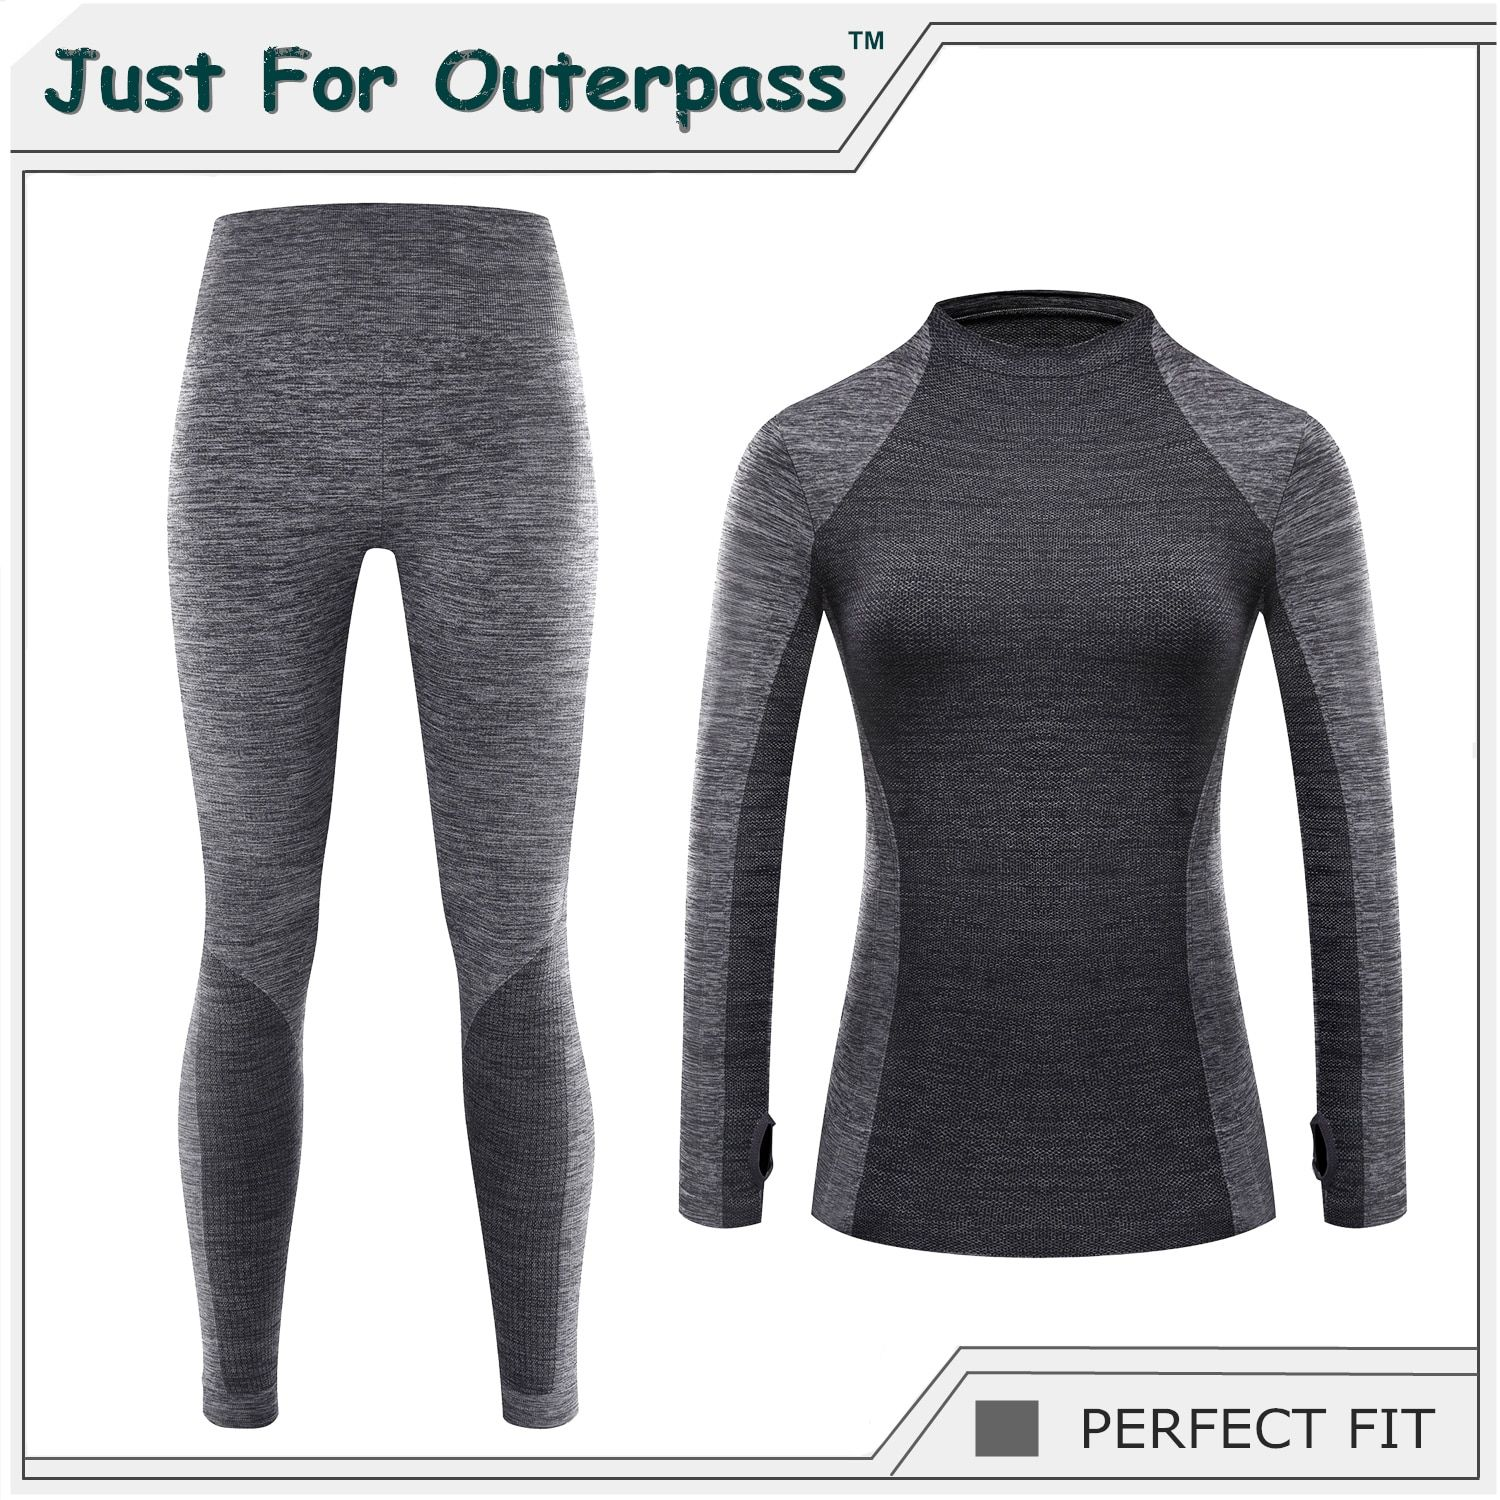 Just For Outerpass Brand 2017 New Winter Thermal Underwear Women Elastic Breathable Female HI-Q Casual Warm Long Johns Set